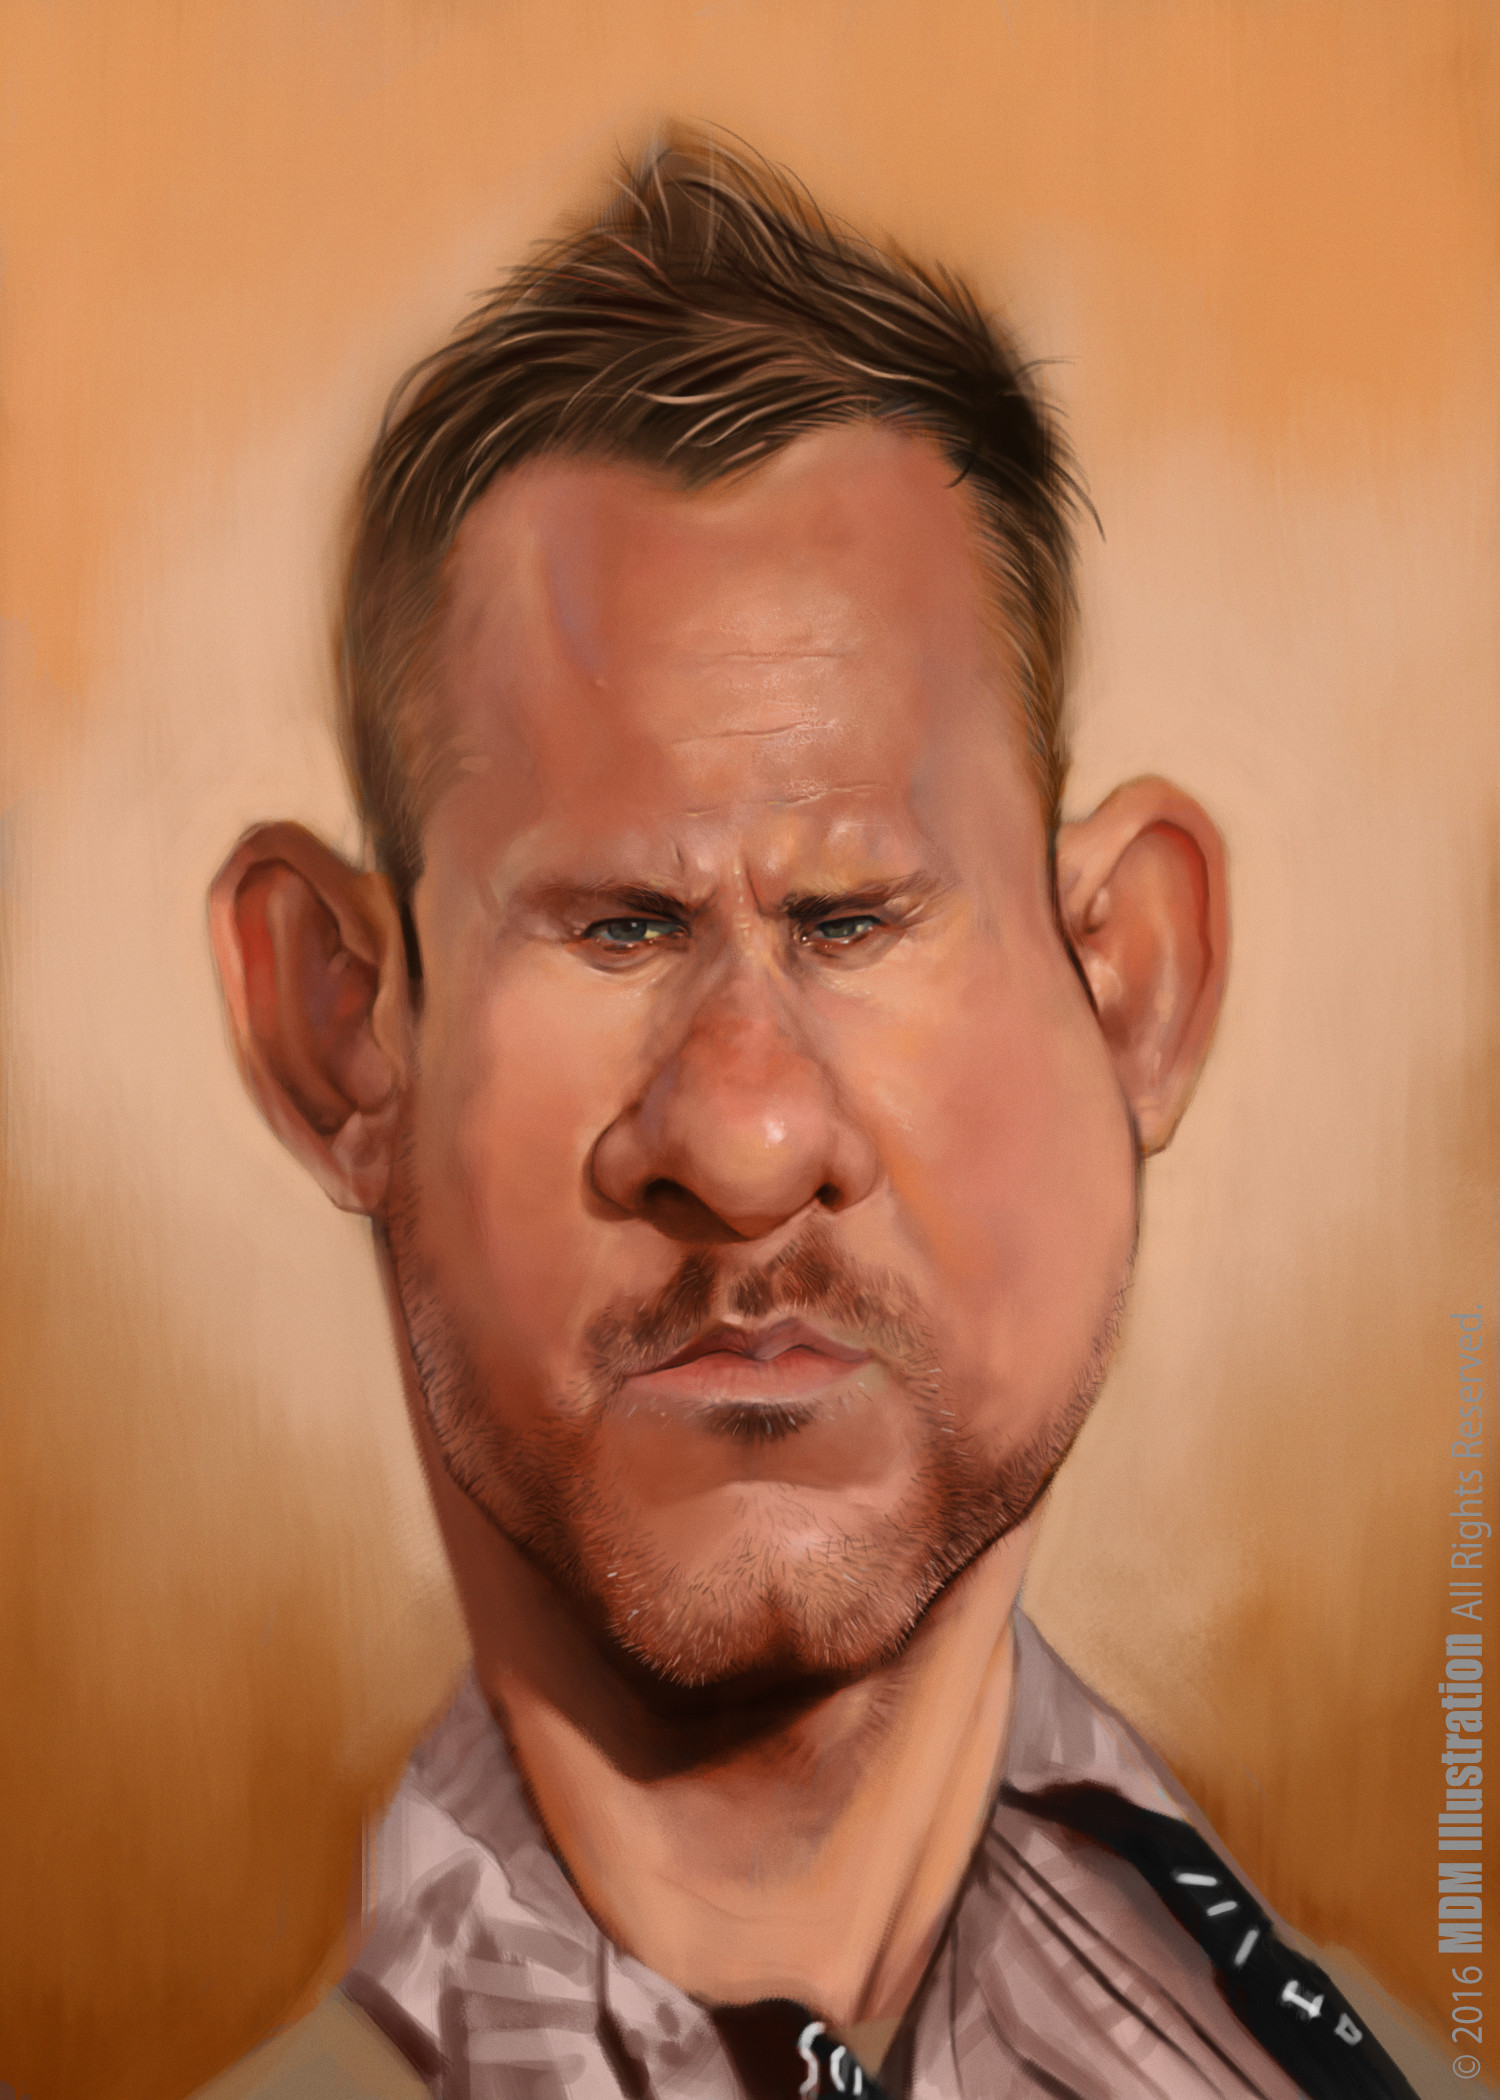 Matthew masterson dominic monaghan paint3